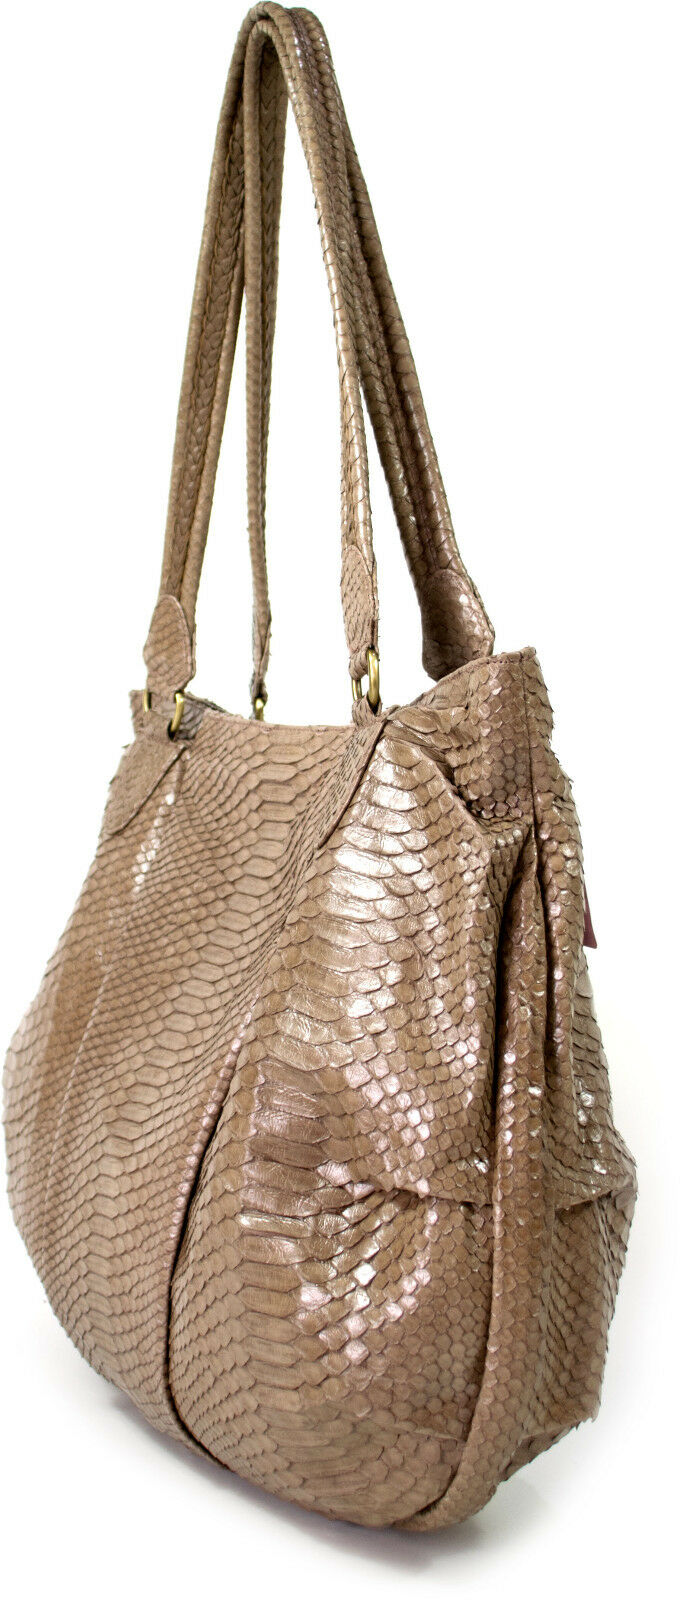 FISH IN THE SEA Cosmo Bag Python nude pearl Schlangenleder Schlangenleder Schlangenleder Damen Shopper XL NEU | Sale Online Shop